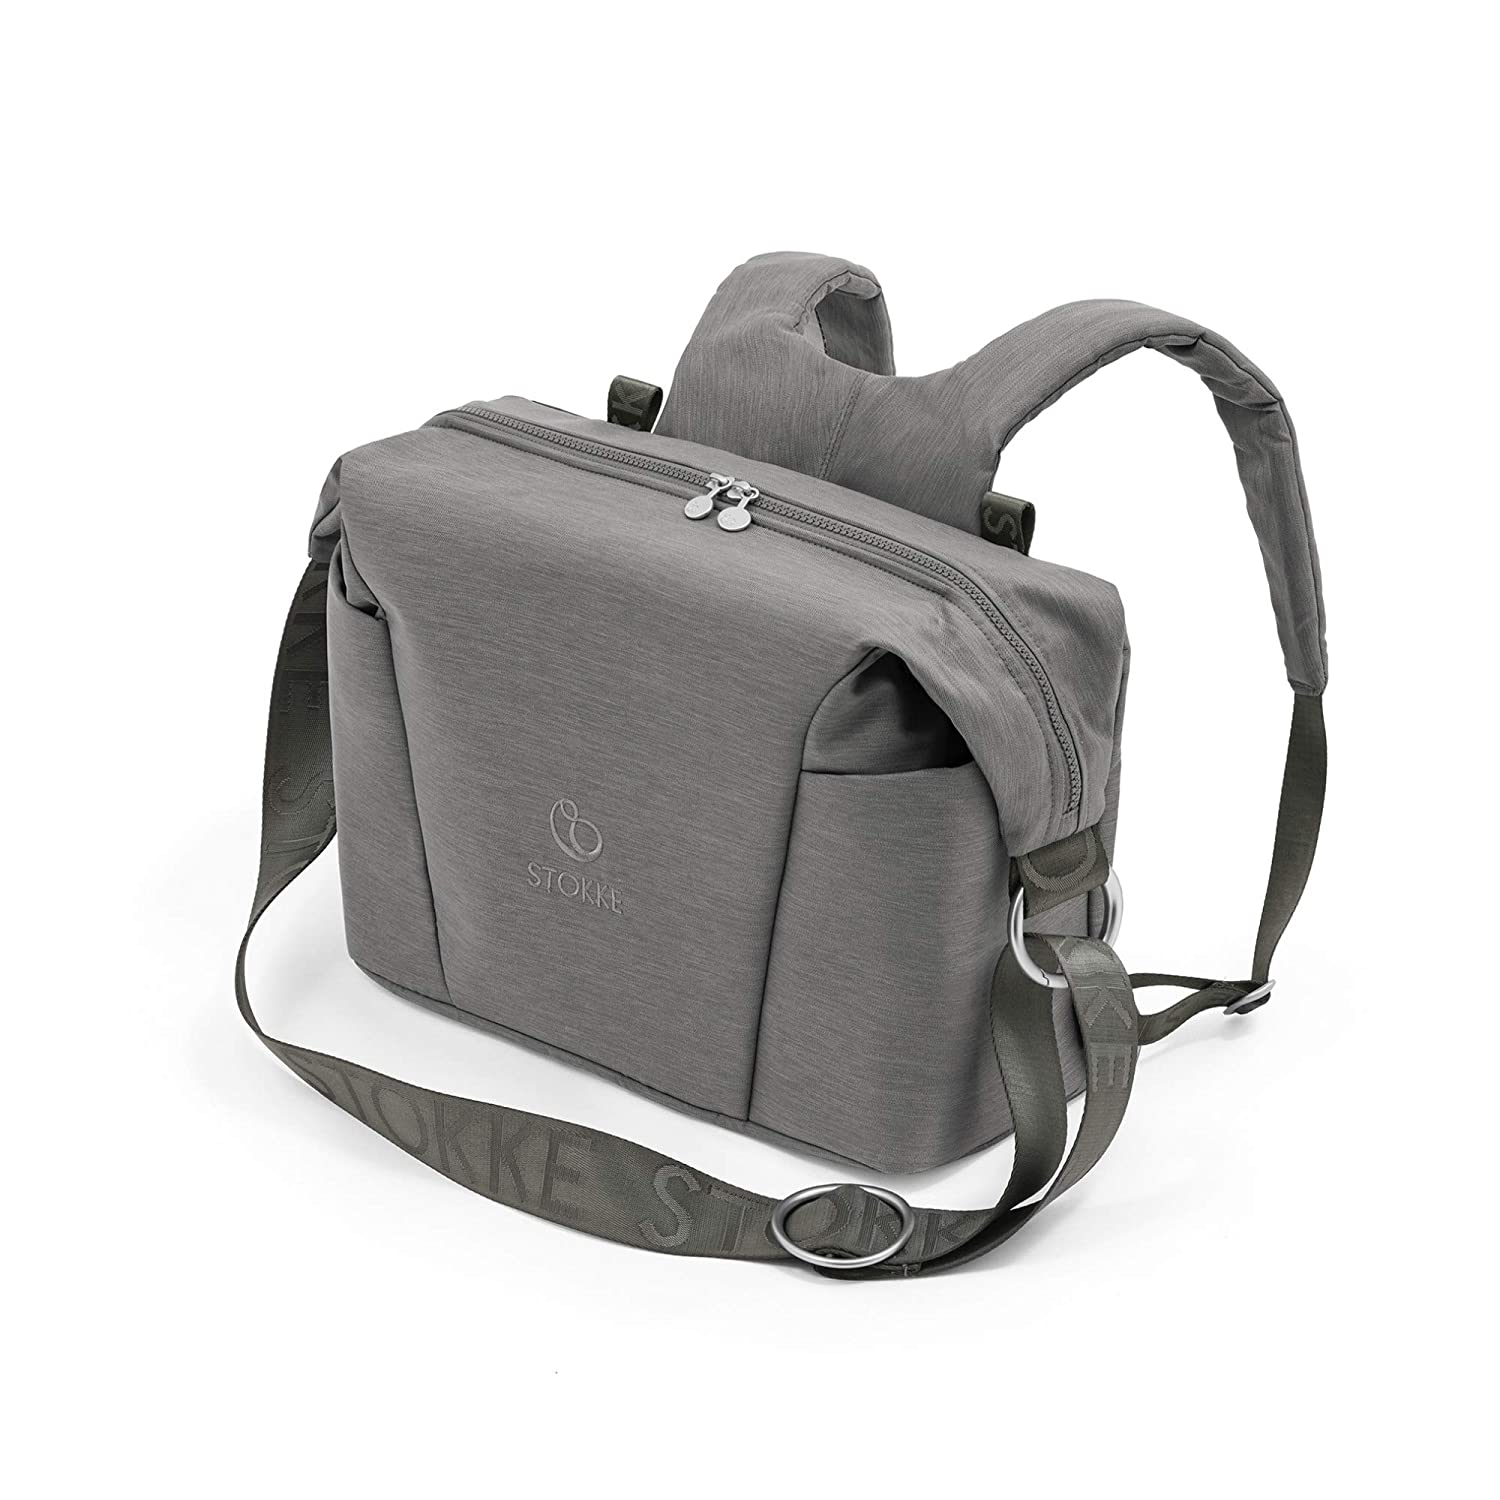 Stokke Xplory X Changing Bag, Modern Grey - Doubles As Shoulder Bag or Backpack - Includes Foldable Changing Mat & Pouch Bag - UPF 50+, Water Repellent, Easy to Clean